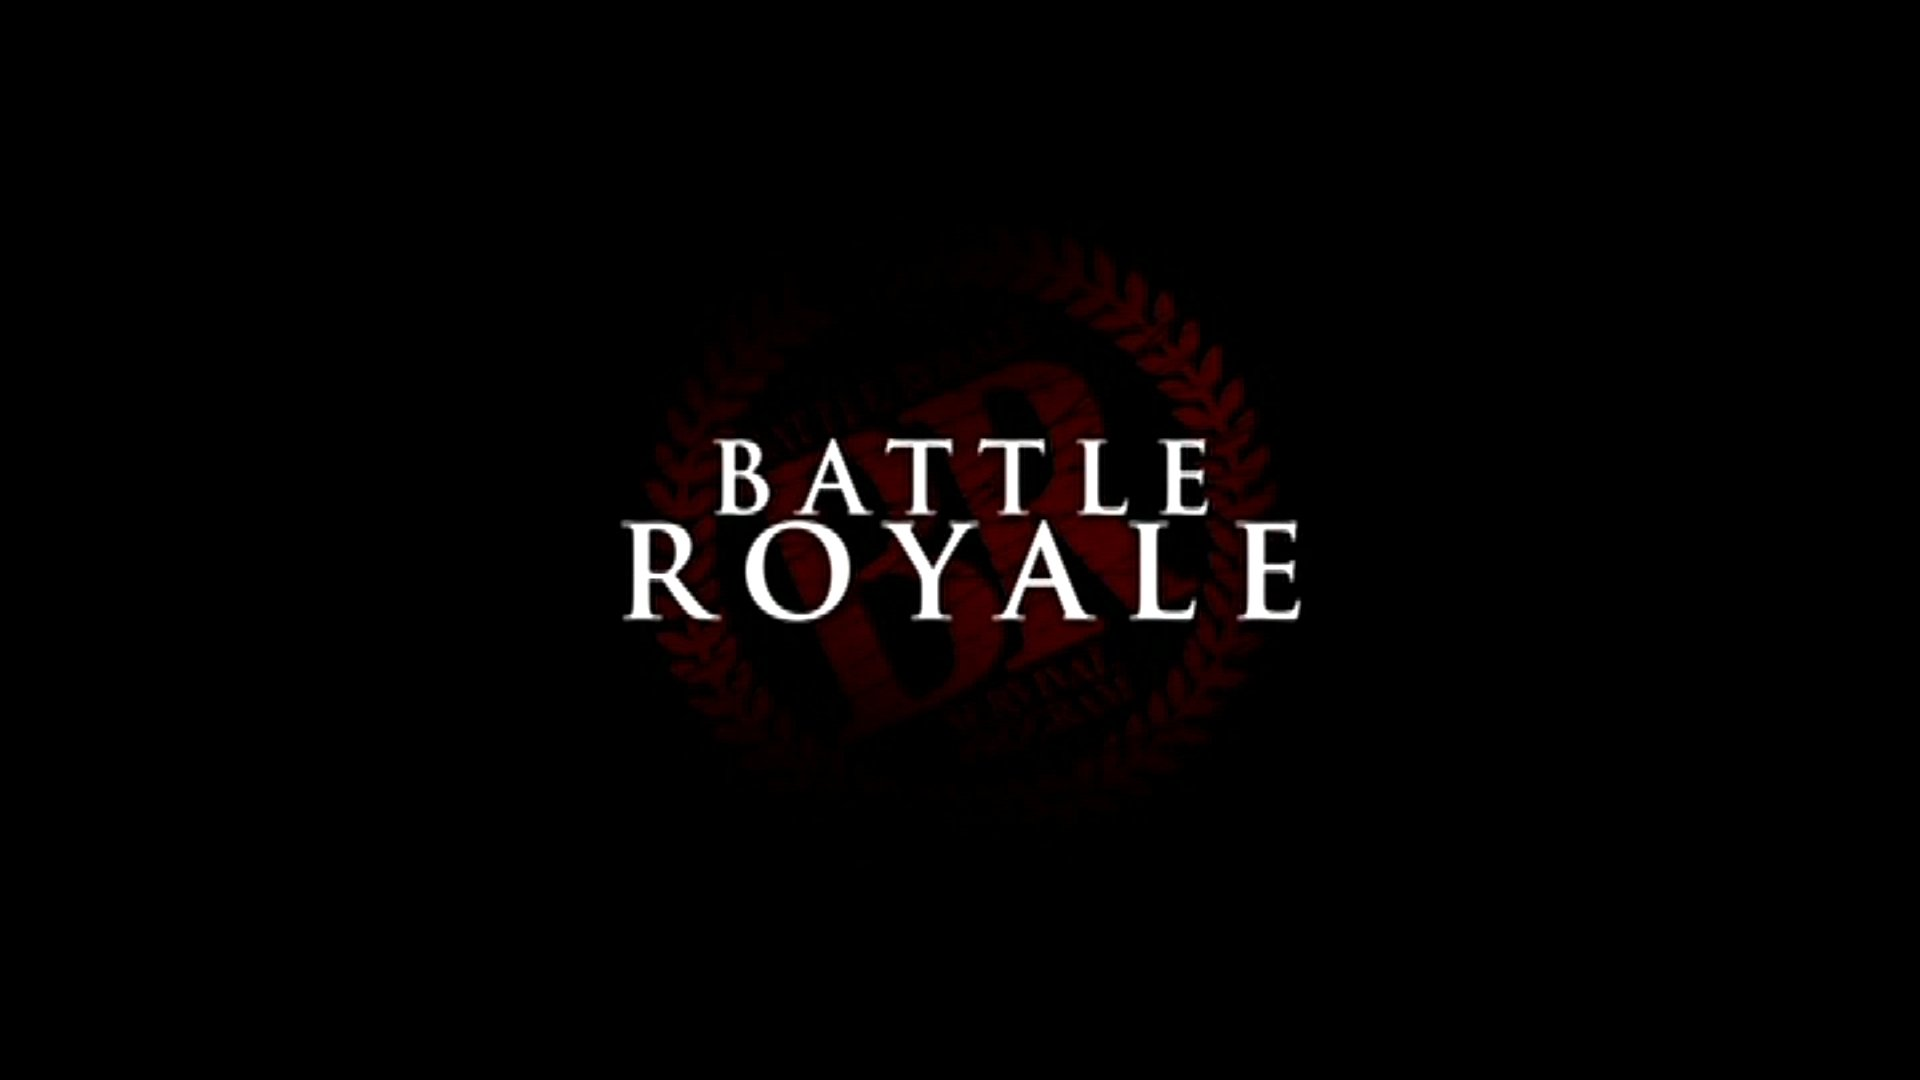 battle royal symbolism A detailed discussion of the writing styles running throughout battle royal or, the invisible man battle royal or, the invisible man including including point of view, structure, setting, language, and meaning.